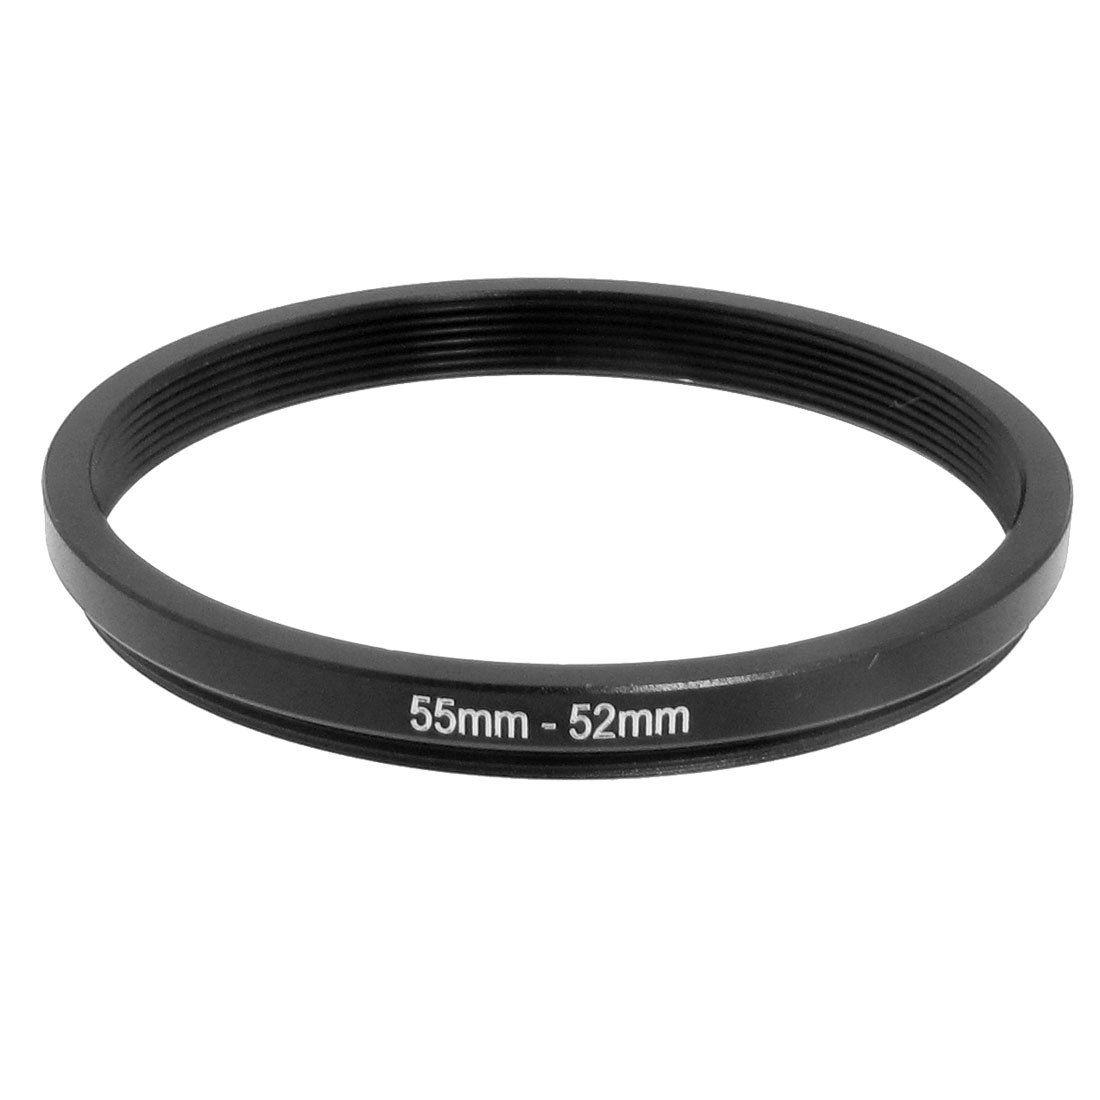 uxcell 55mm-52mm 55mm to 52mm Black Step Down Ring Adapter for Camera a12051700ux0177